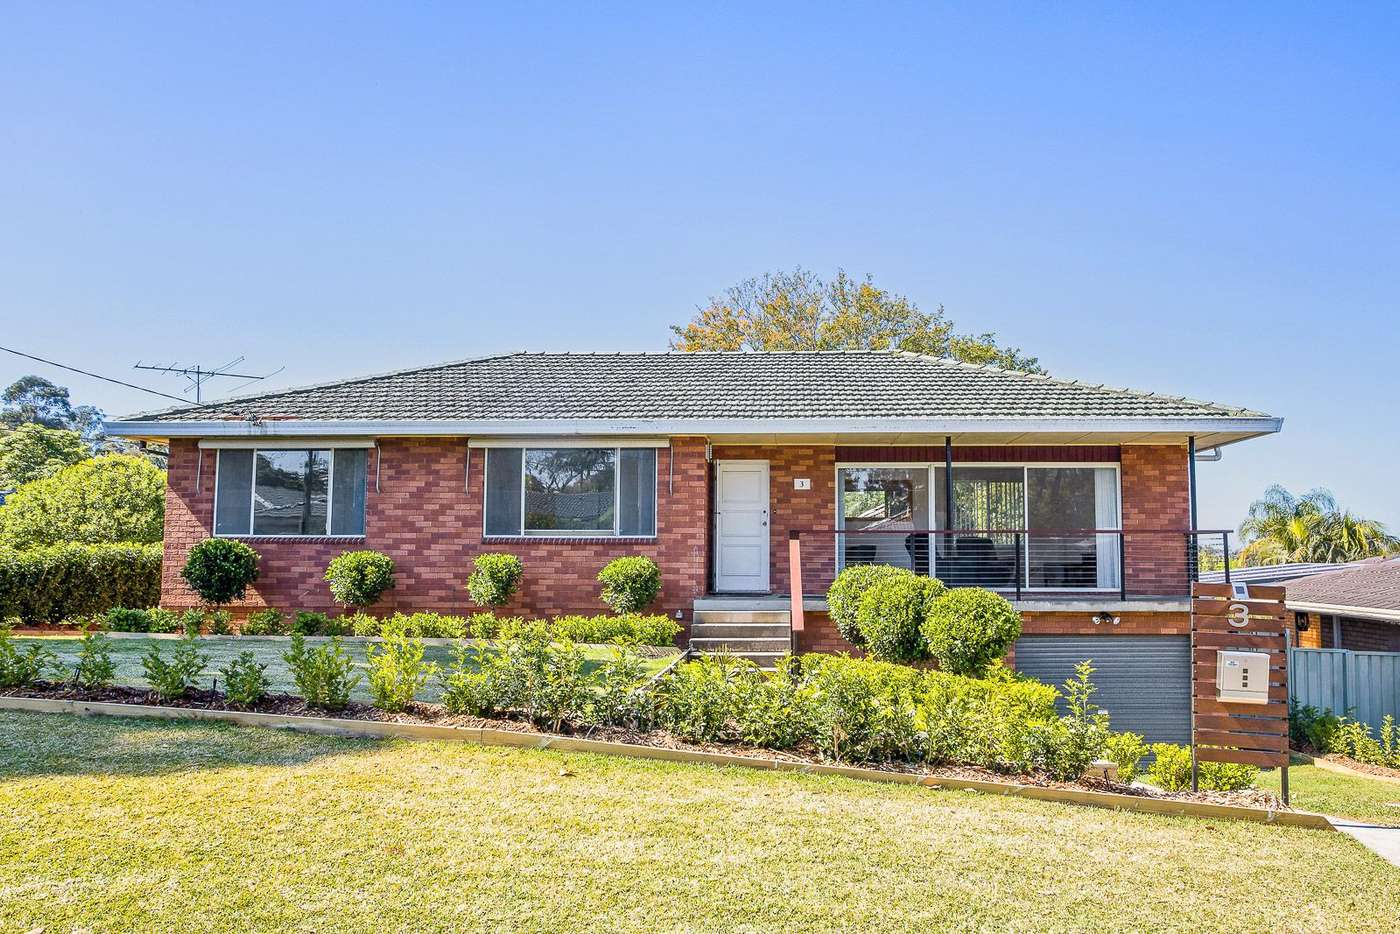 Main view of Homely house listing, 3 Cypress Court, Baulkham Hills NSW 2153